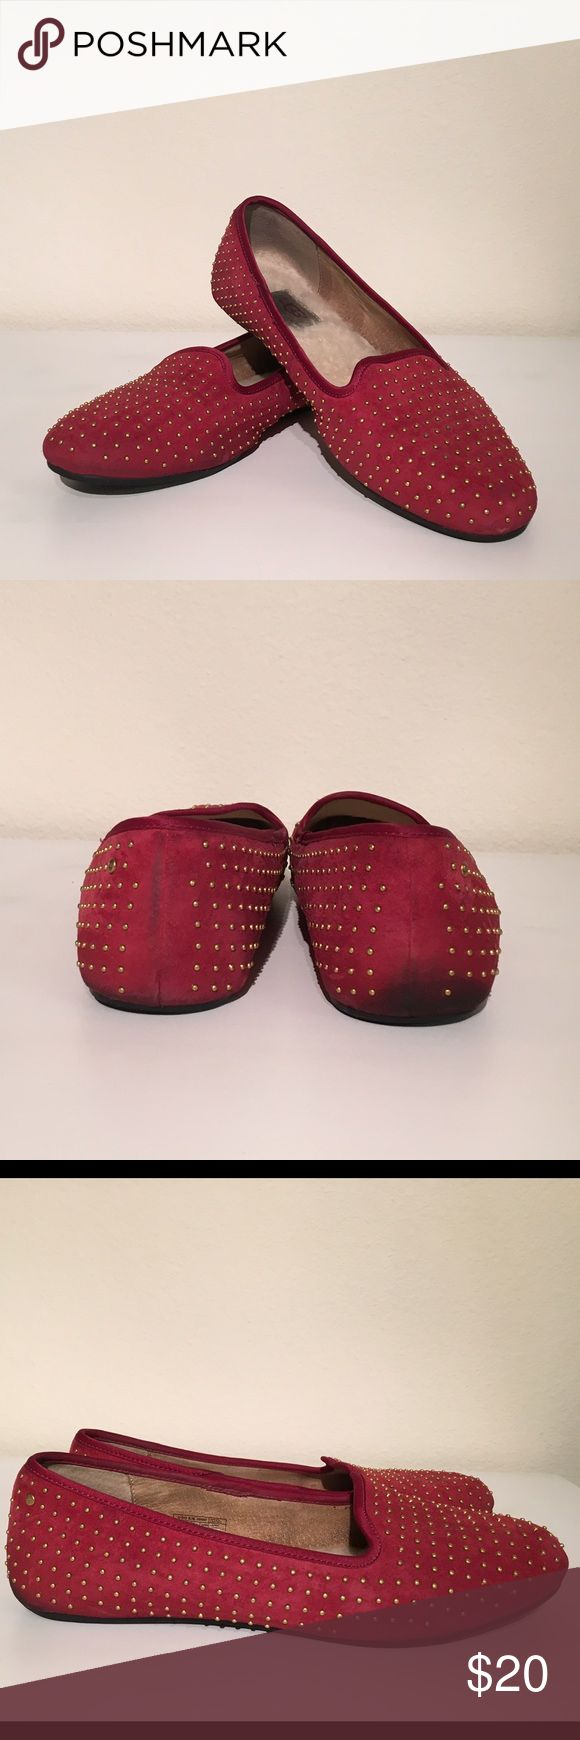 Ugg Suede Studded Loafers Ugg suede loafers. Insole shows signs of wear, but still in great condition. UGG Shoes Flats & Loafers